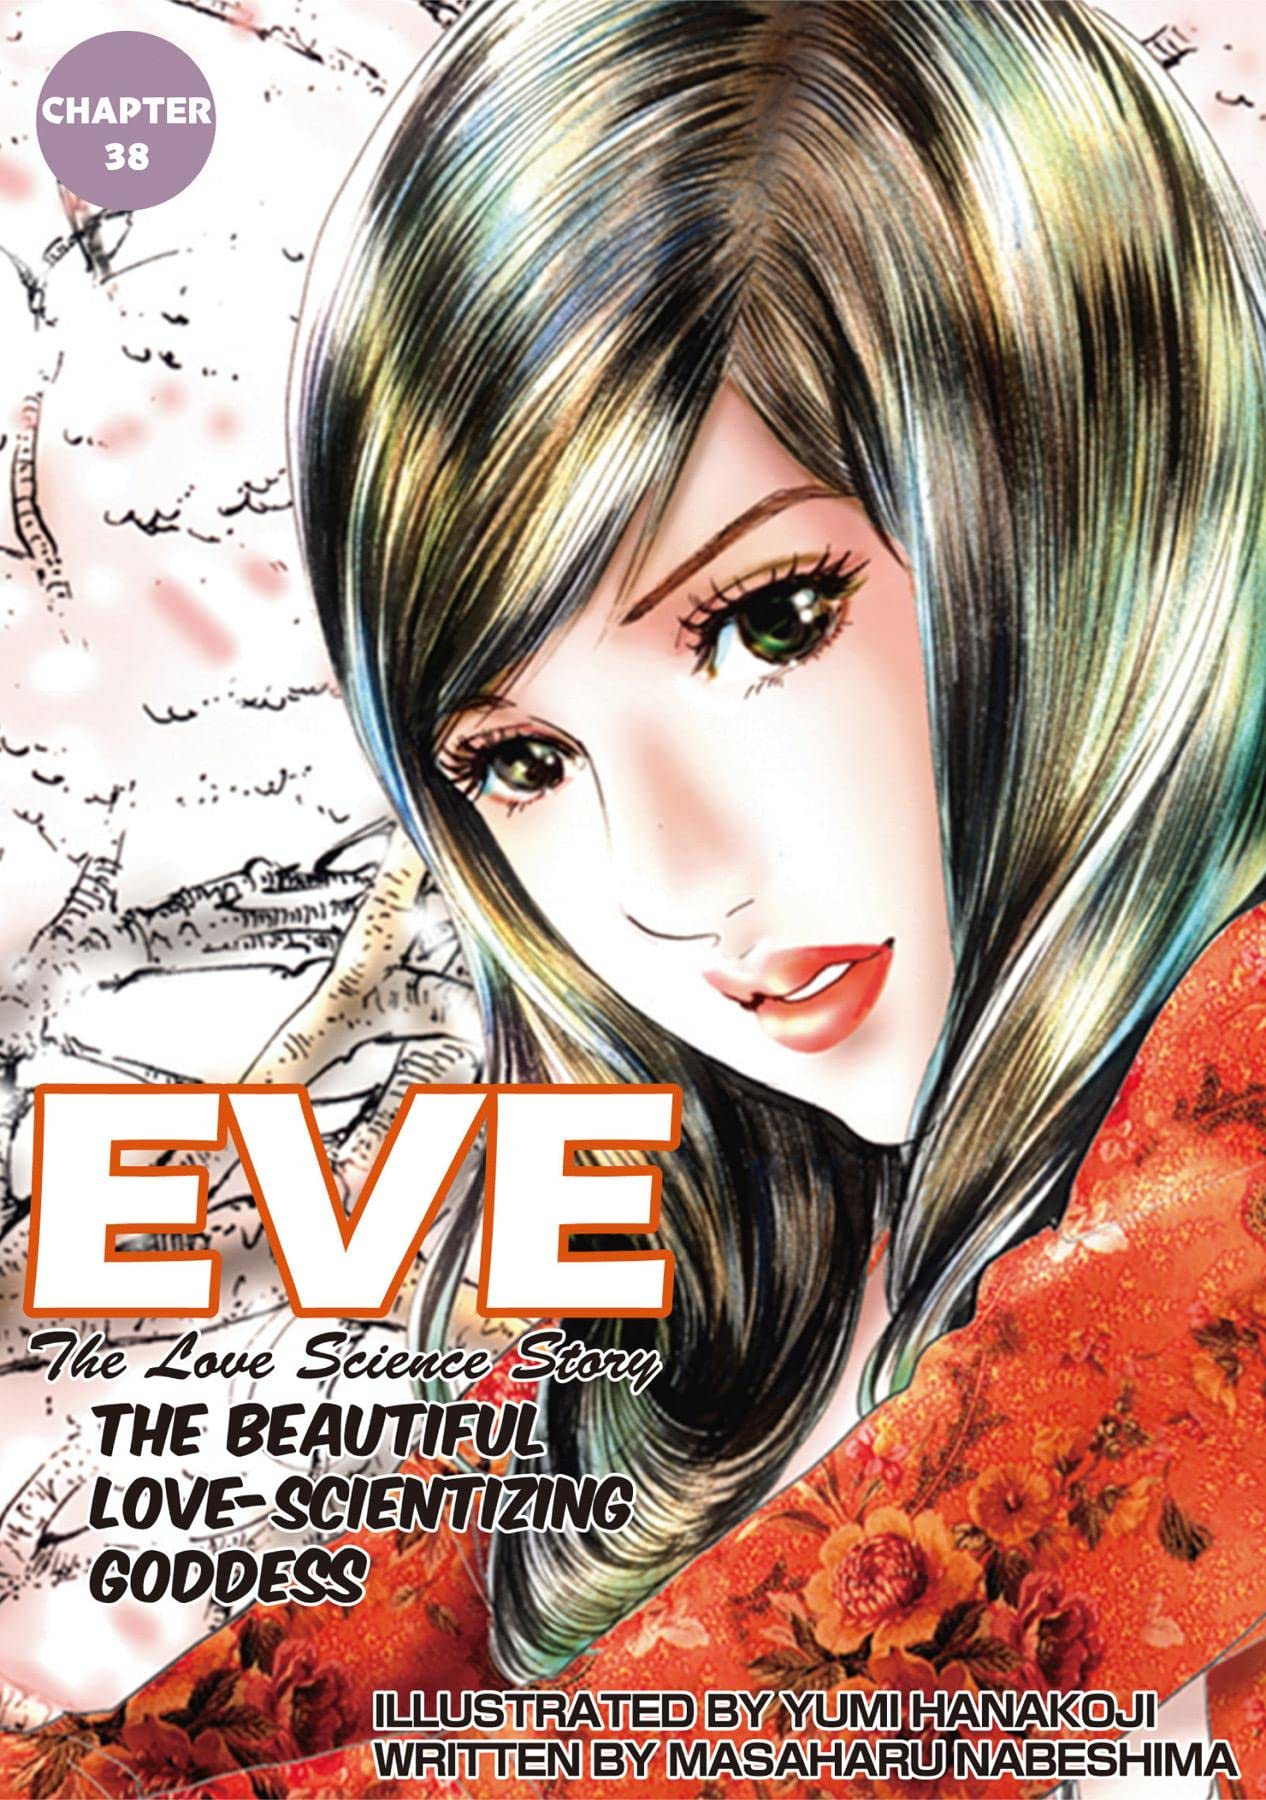 EVE:THE BEAUTIFUL LOVE-SCIENTIZING GODDESS #38